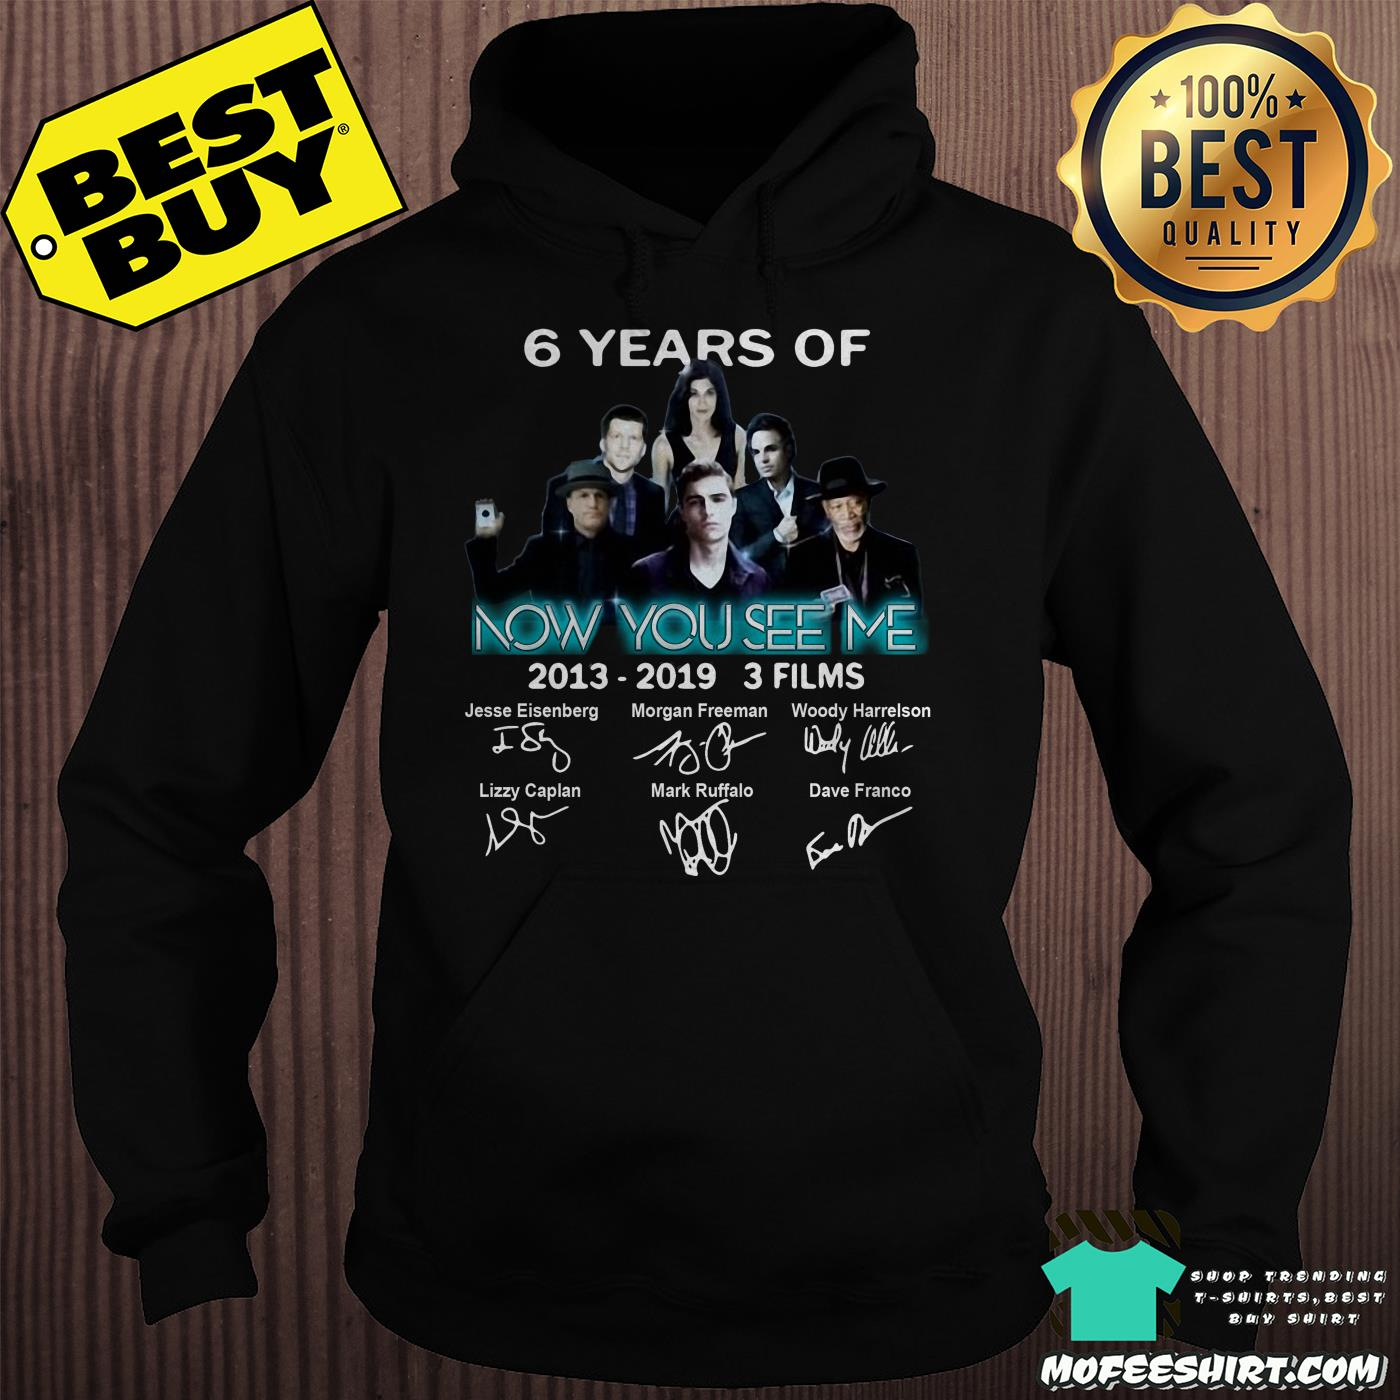 6 years of now you see me 3 films 2013 2019 signatures hoodie - 6 Years Of Now You See Me 3 Films 2013-2019 Signatures shirt